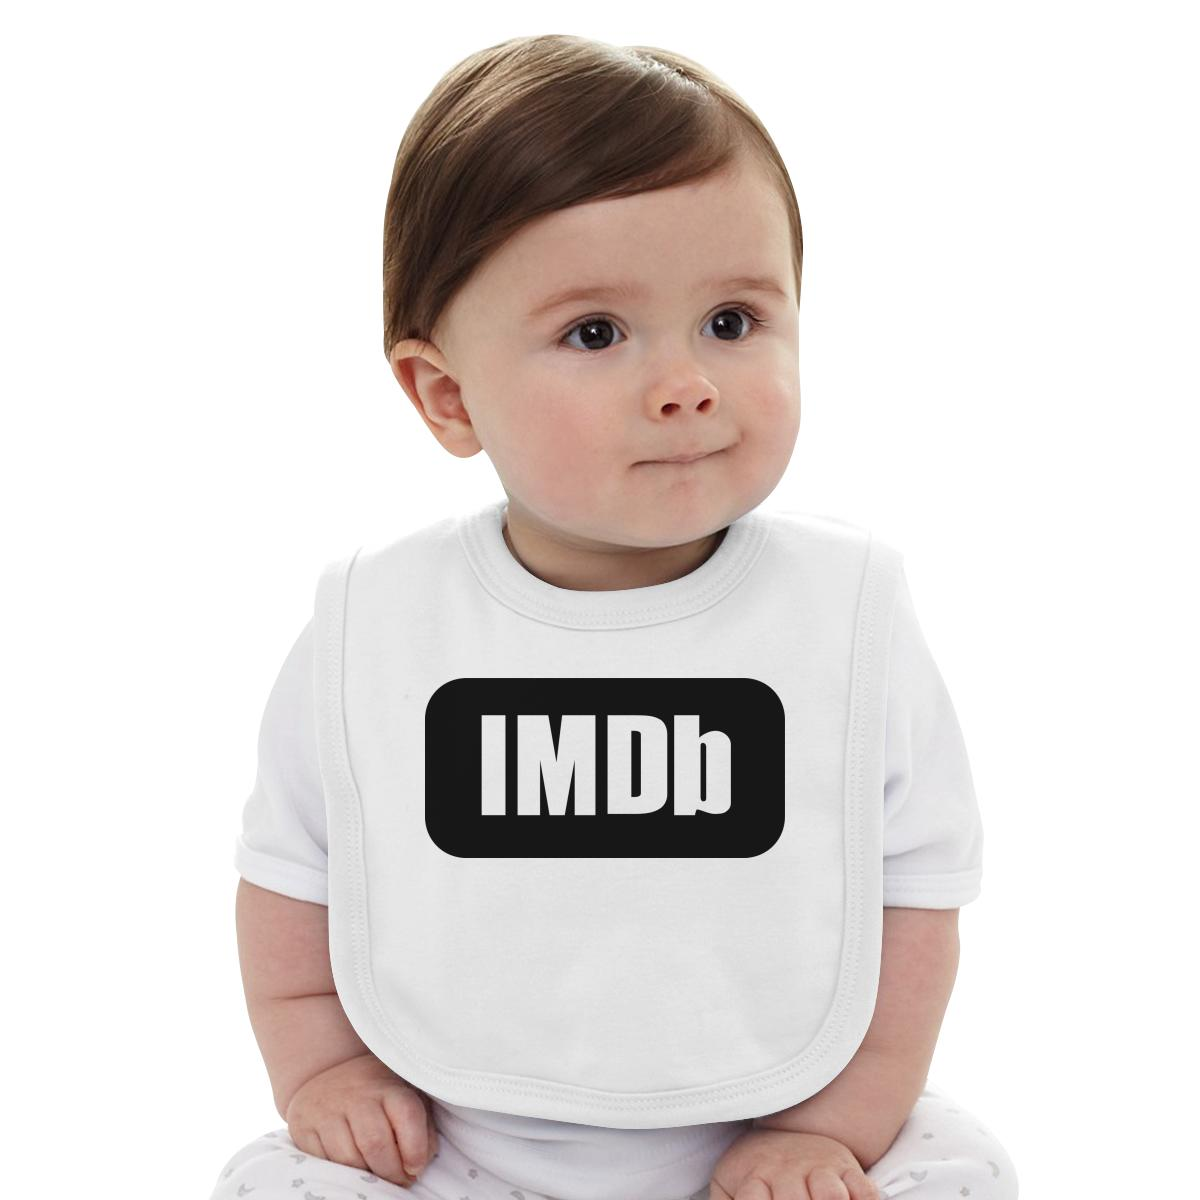 IMDb Logo Baby Bib | Customon.com